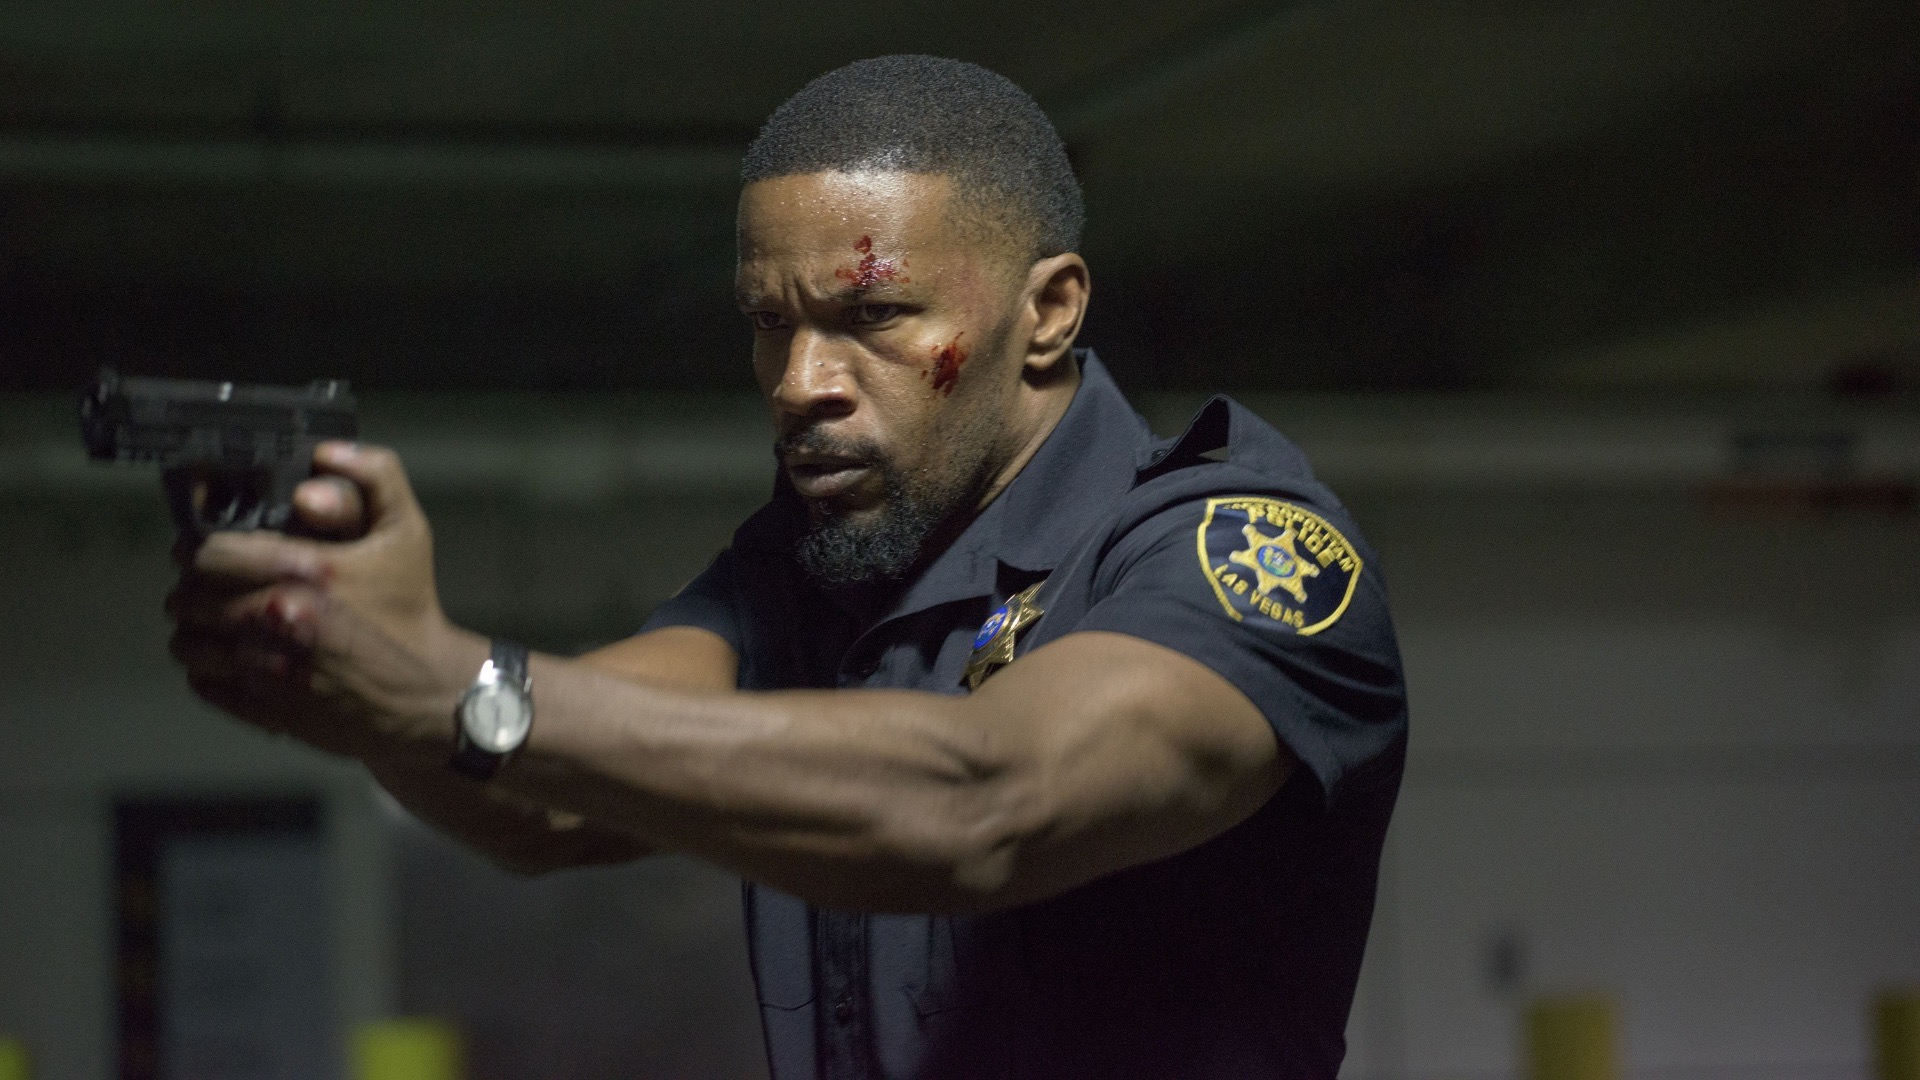 Jamie Foxx in Sleepless.